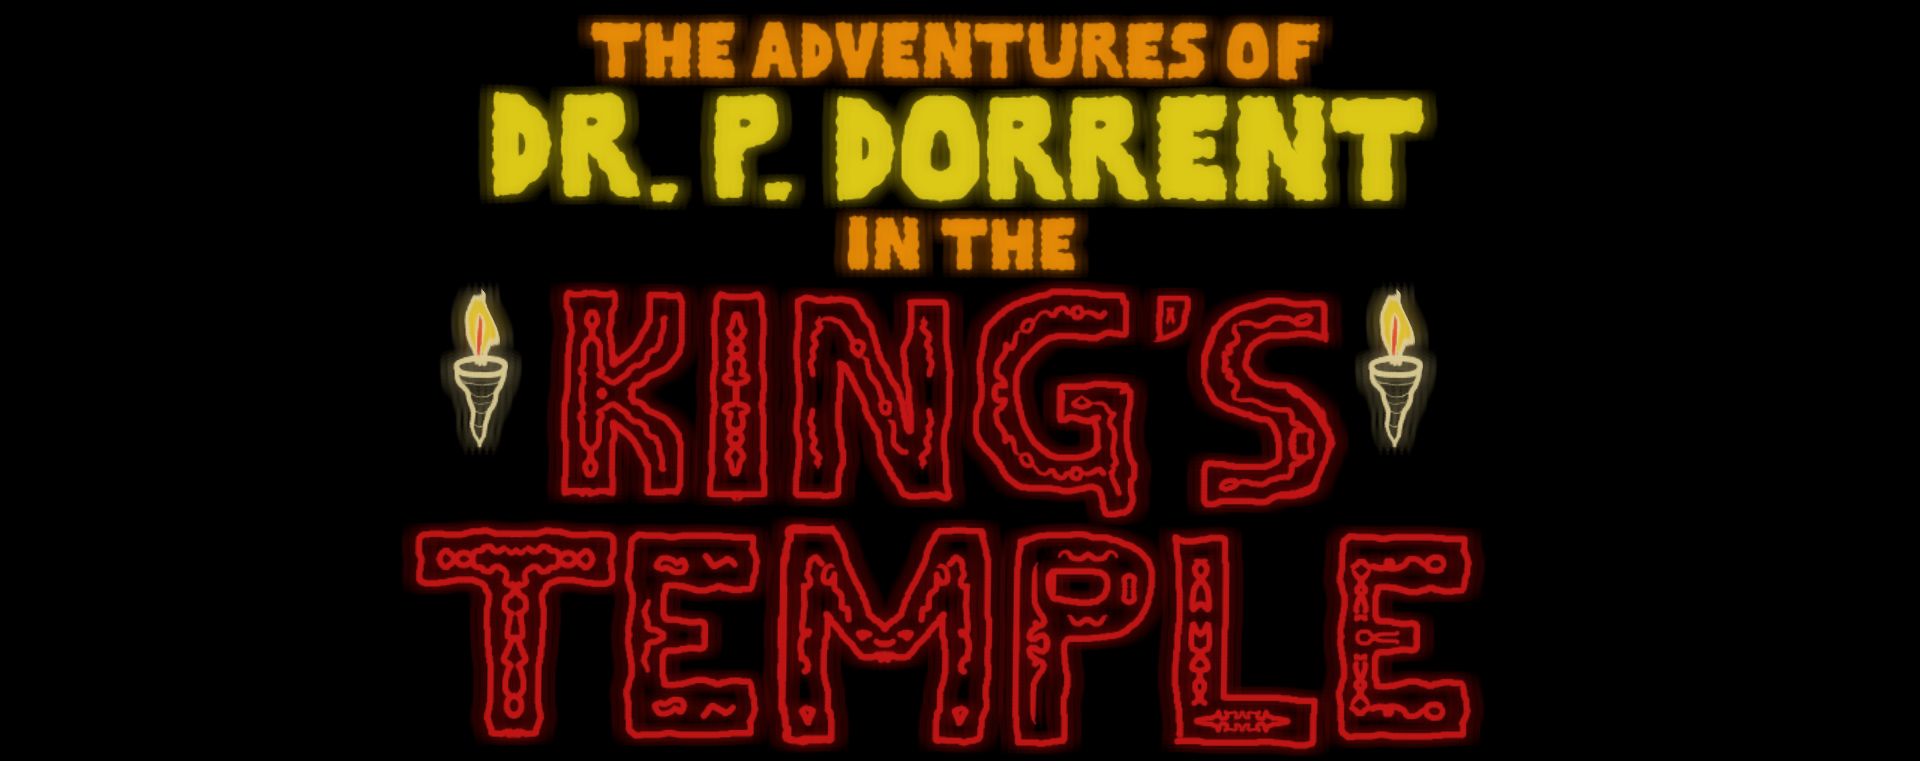 The Adventures of Dr. P. Dorrent in the King's Temple (WT)